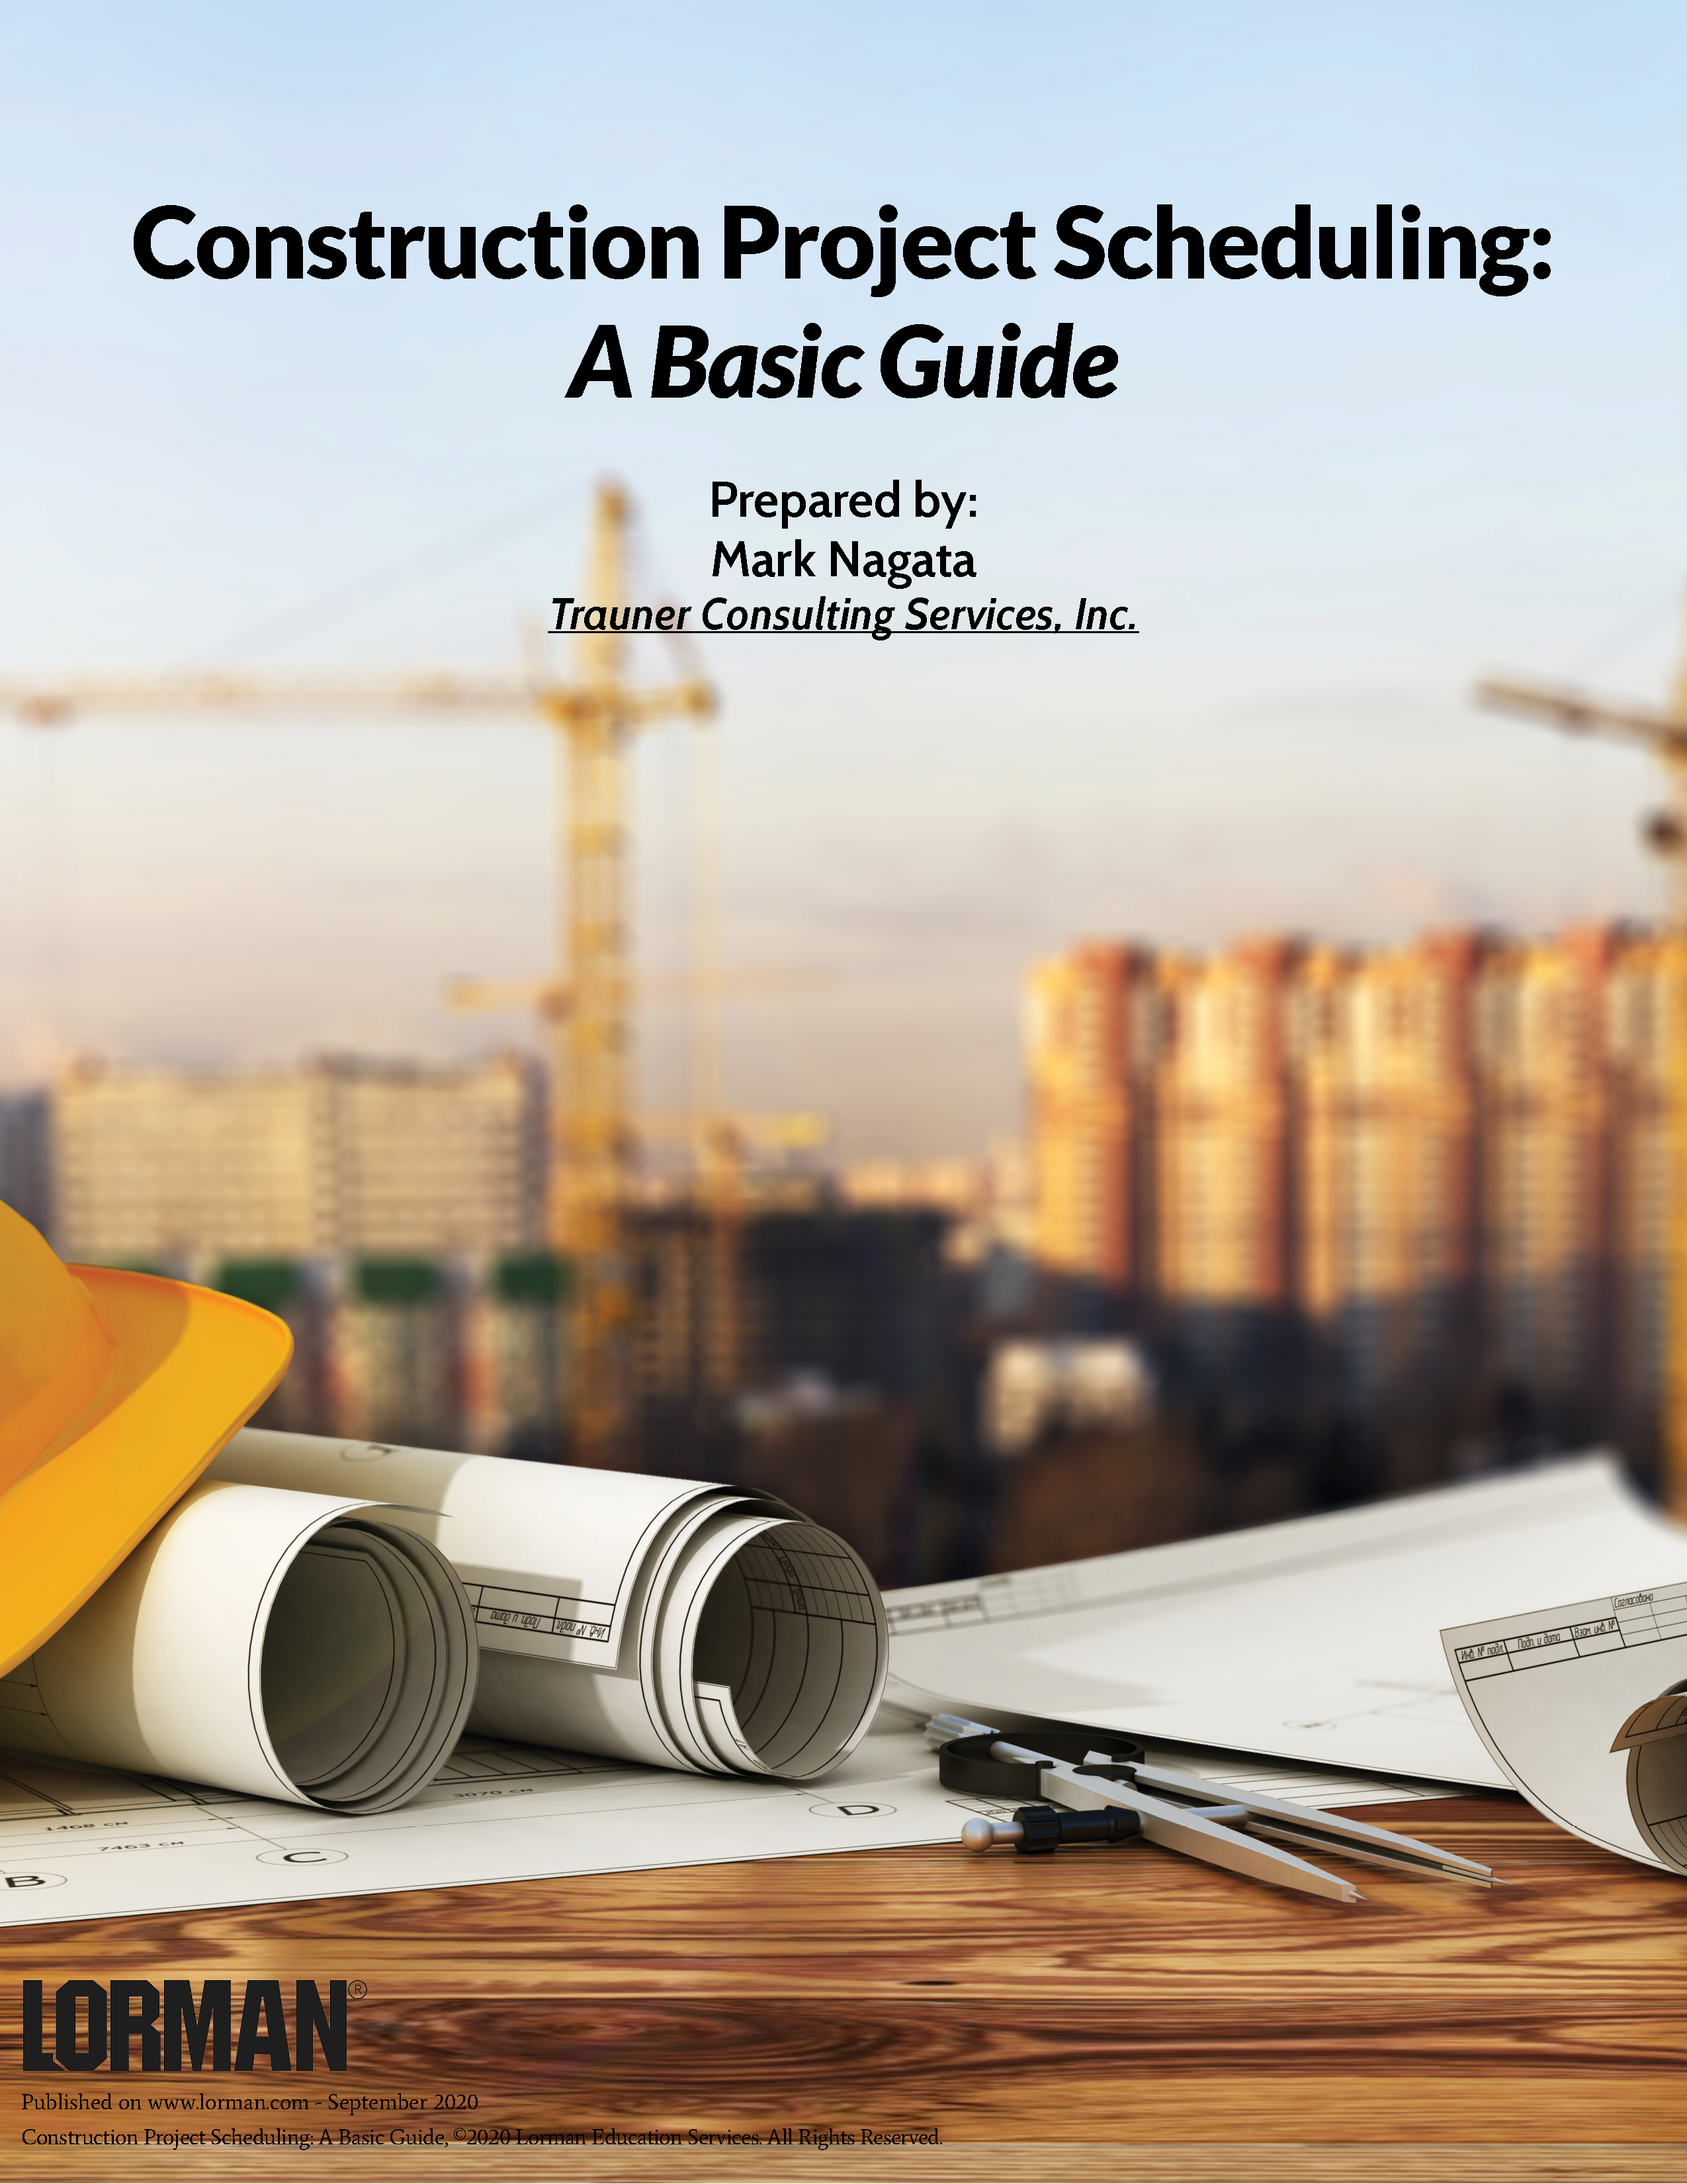 Construction Project Scheduling: A Basic Guide